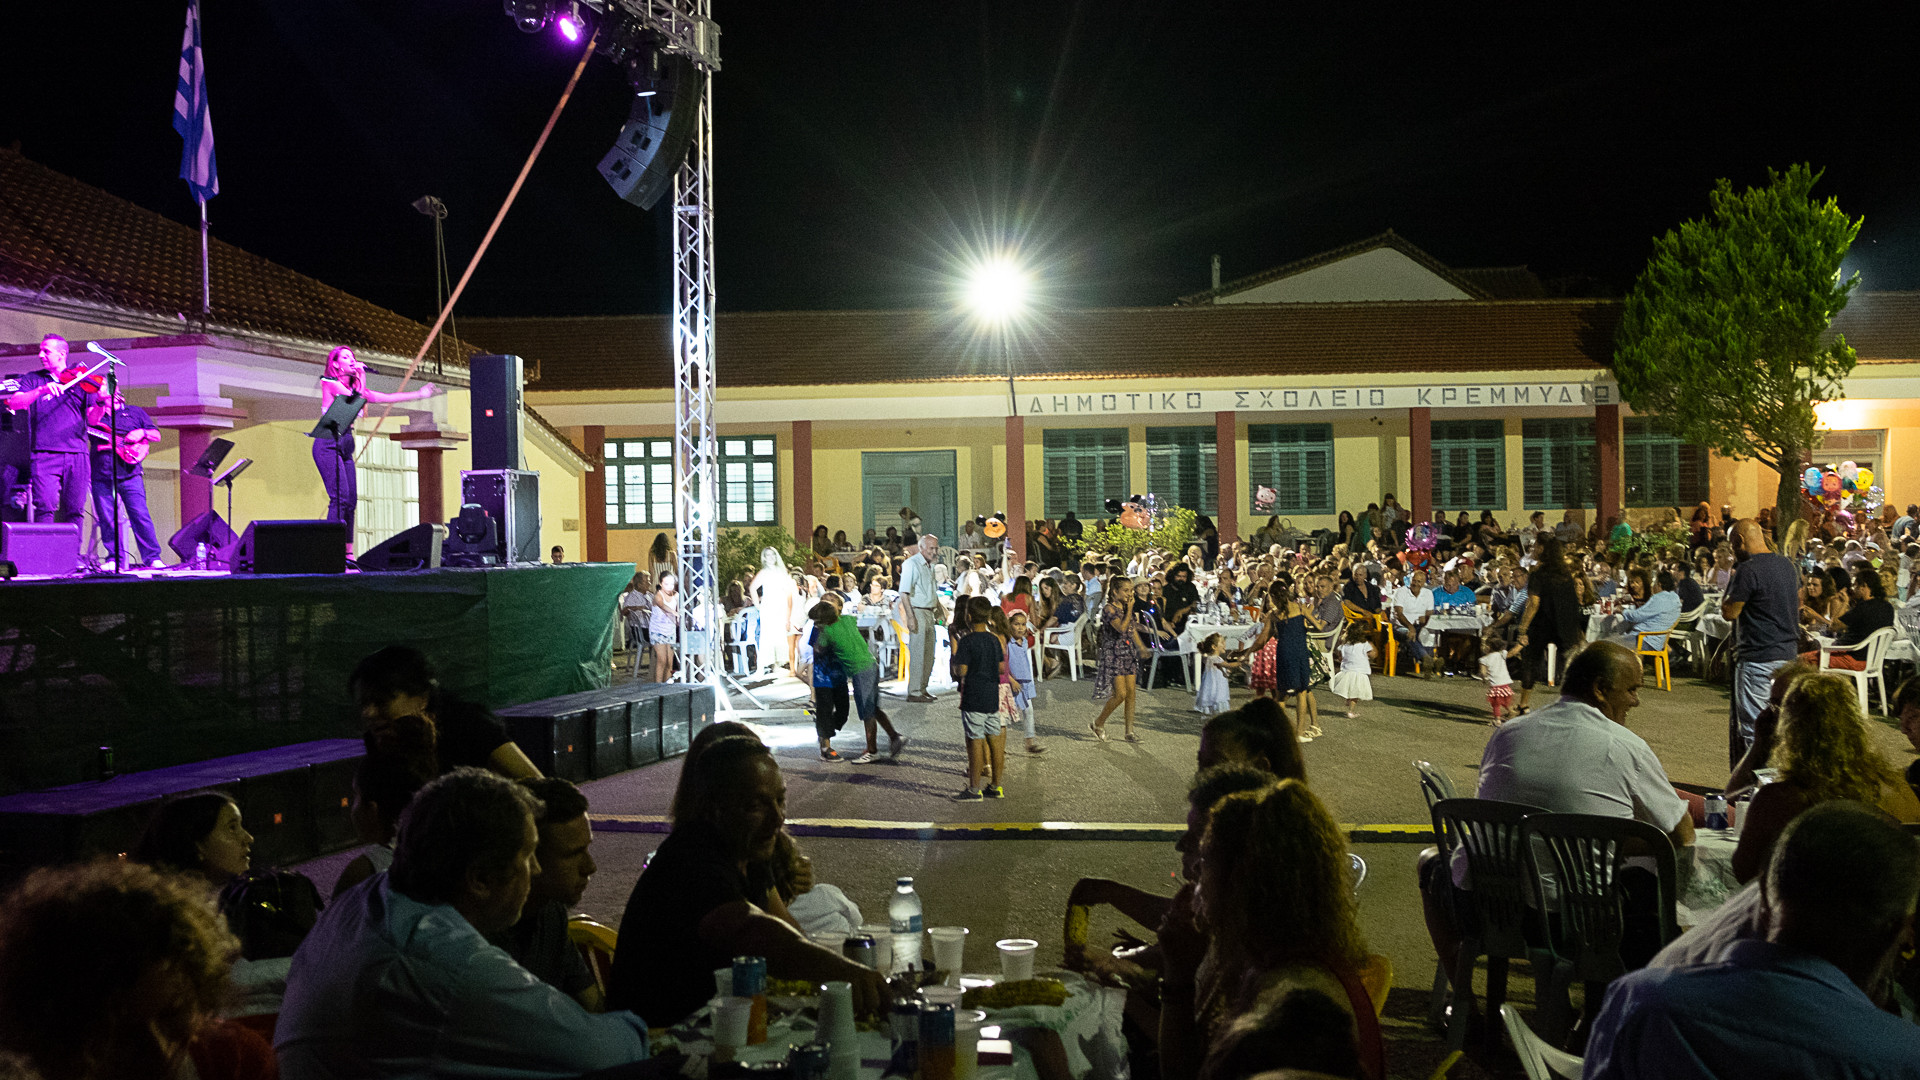 Kremydia, Messinia, Greece, Manifestations of 15th August, guest singer Giorgos Margaritis